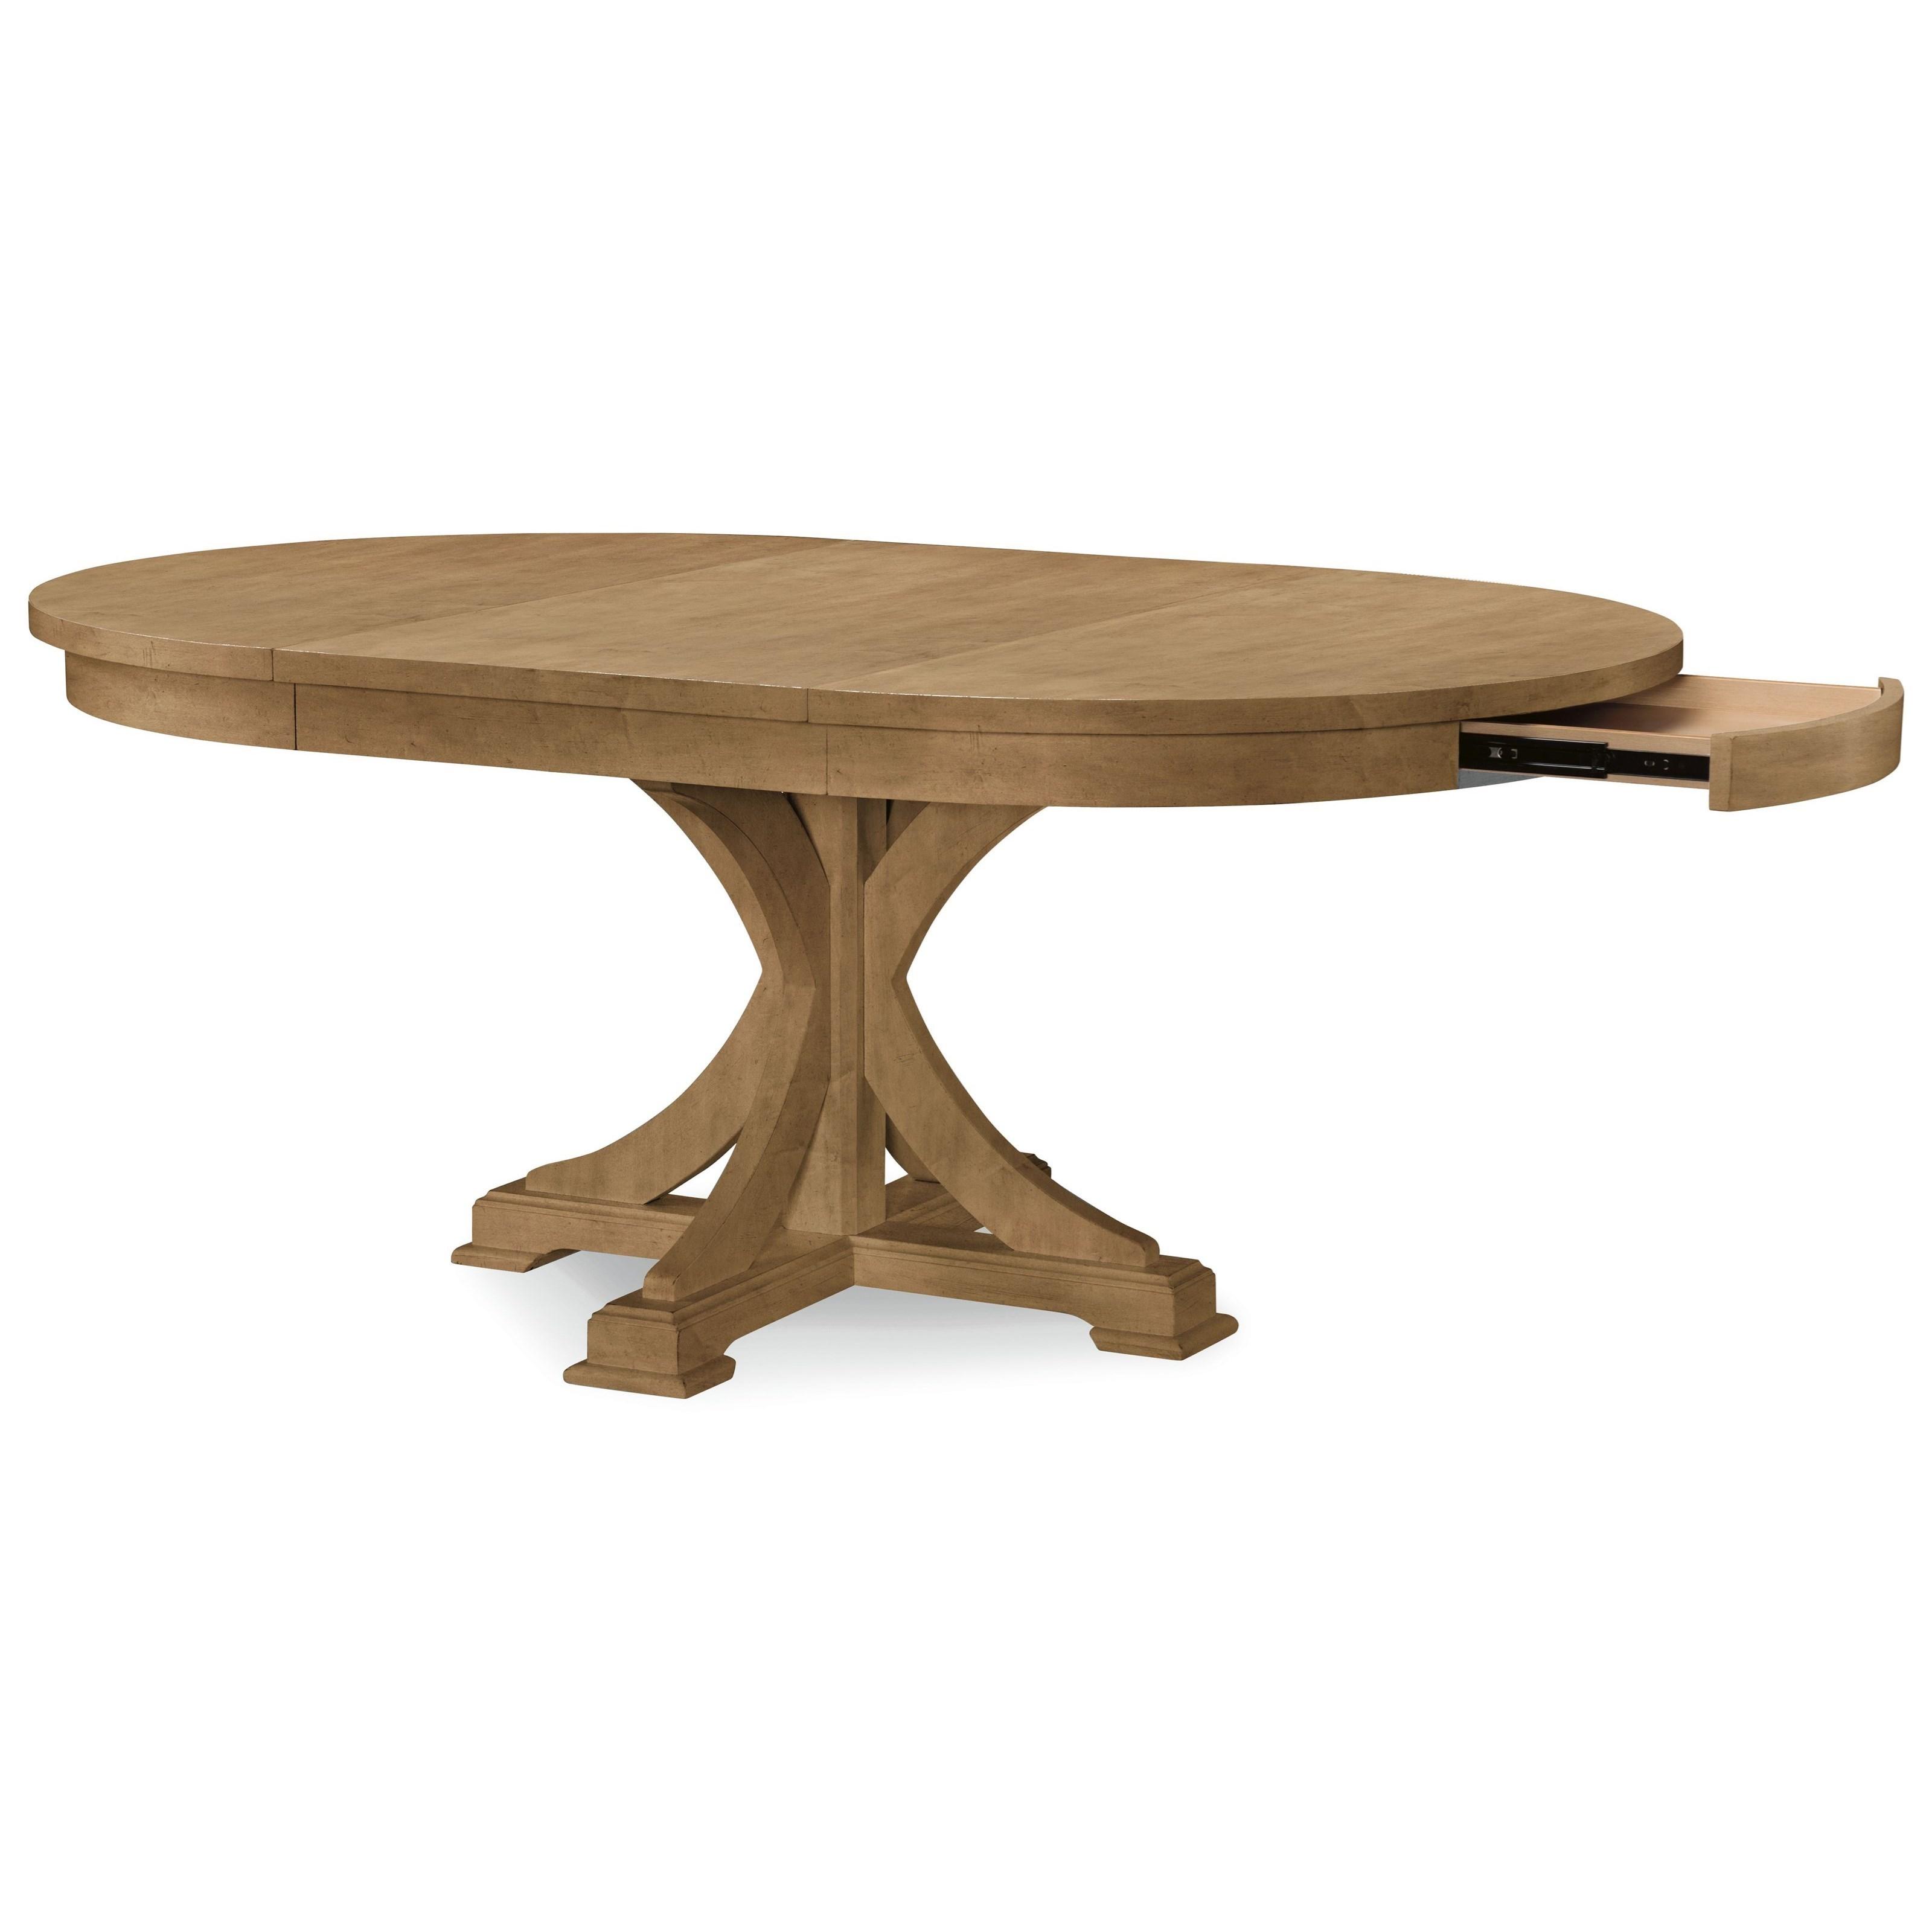 Pedestal tables Rachael Ray Home by Legacy classic everyday table from round to oval base LHLPCYH